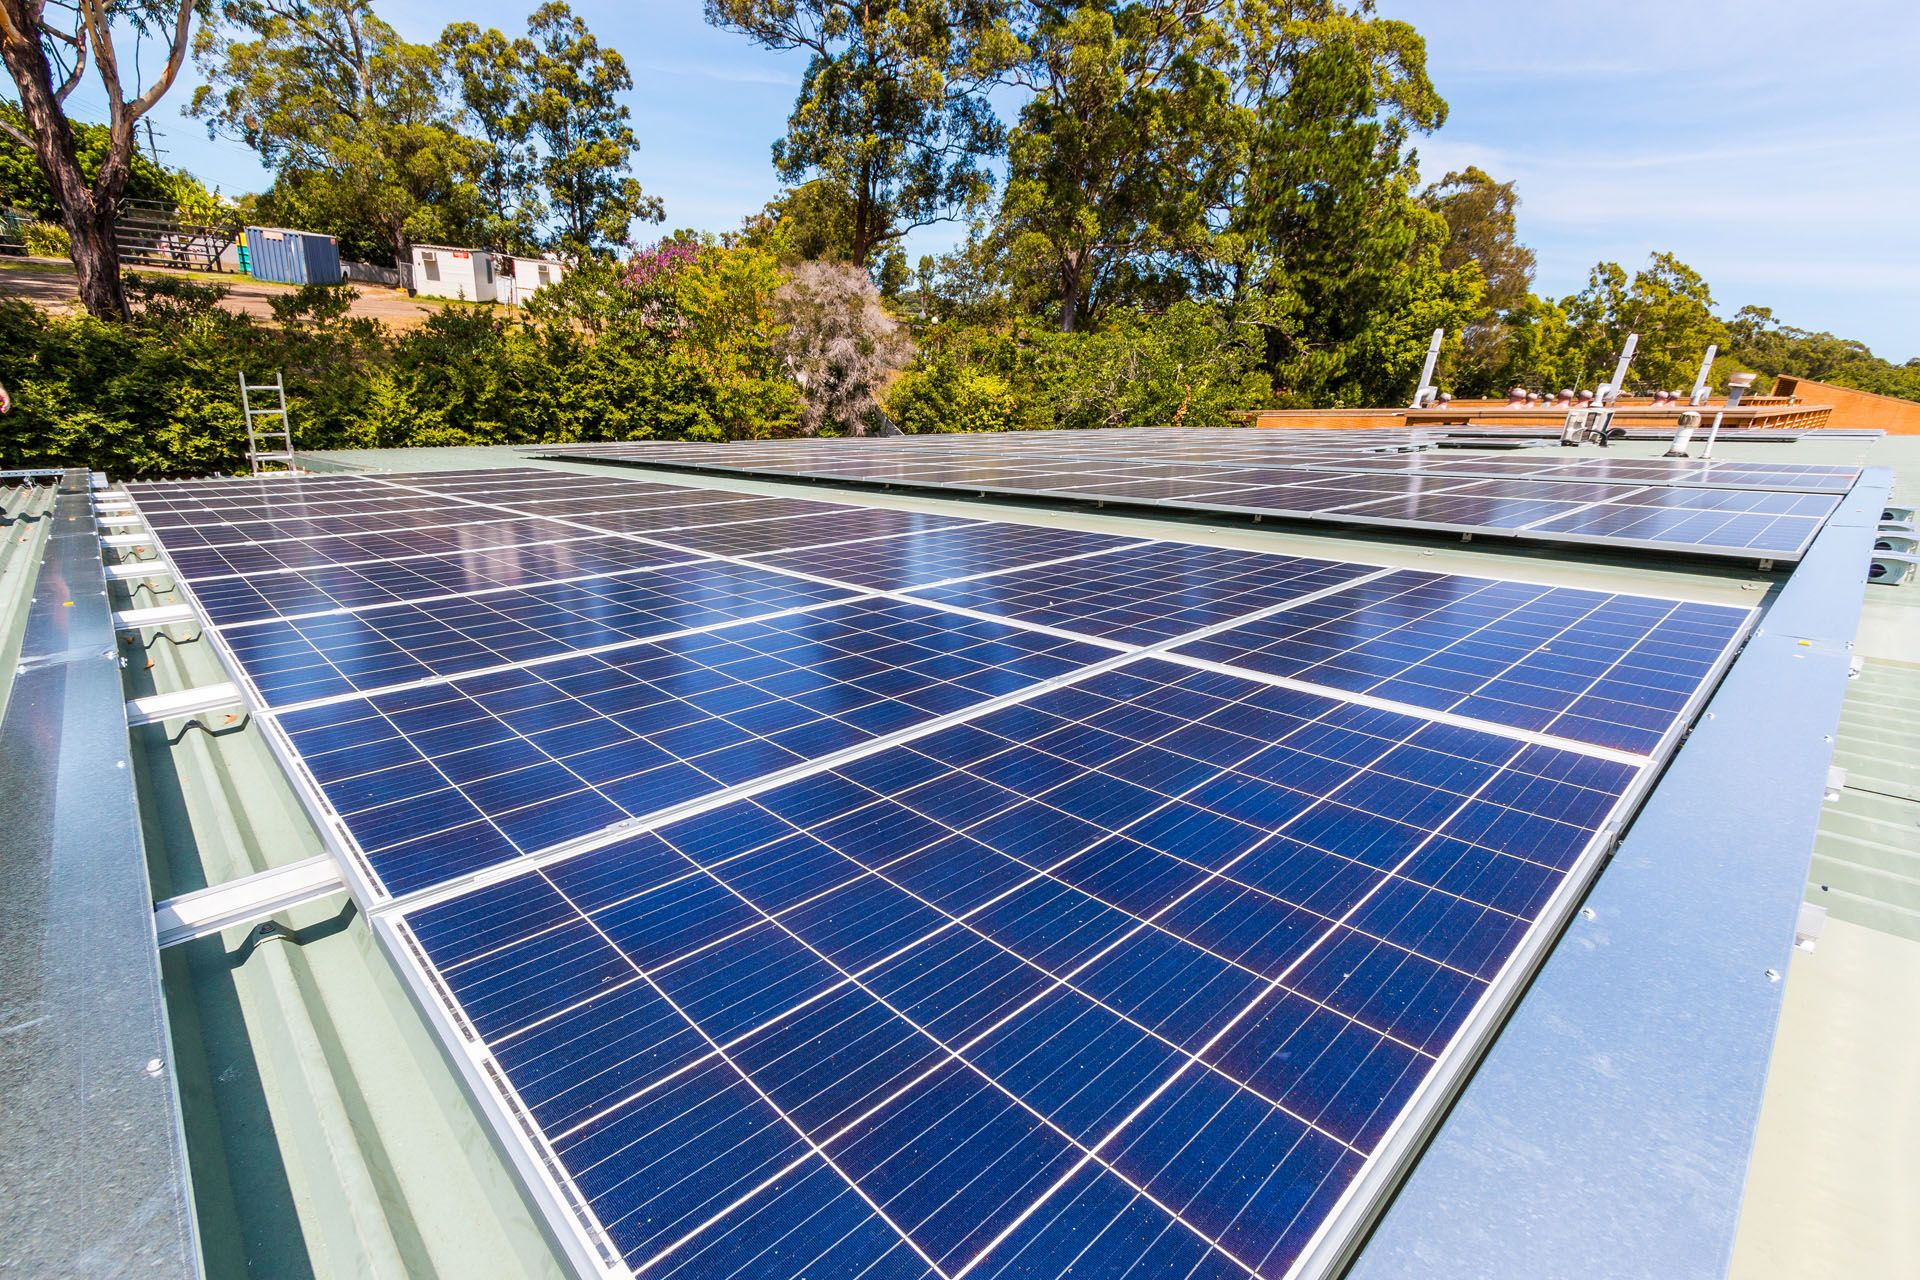 Don T Pay Energy Until 2020 All Of California Own Your Energy Today Www Smartenergytoday Net 702 972 1032 L Energy Conservation Roof Solar Panel Solar